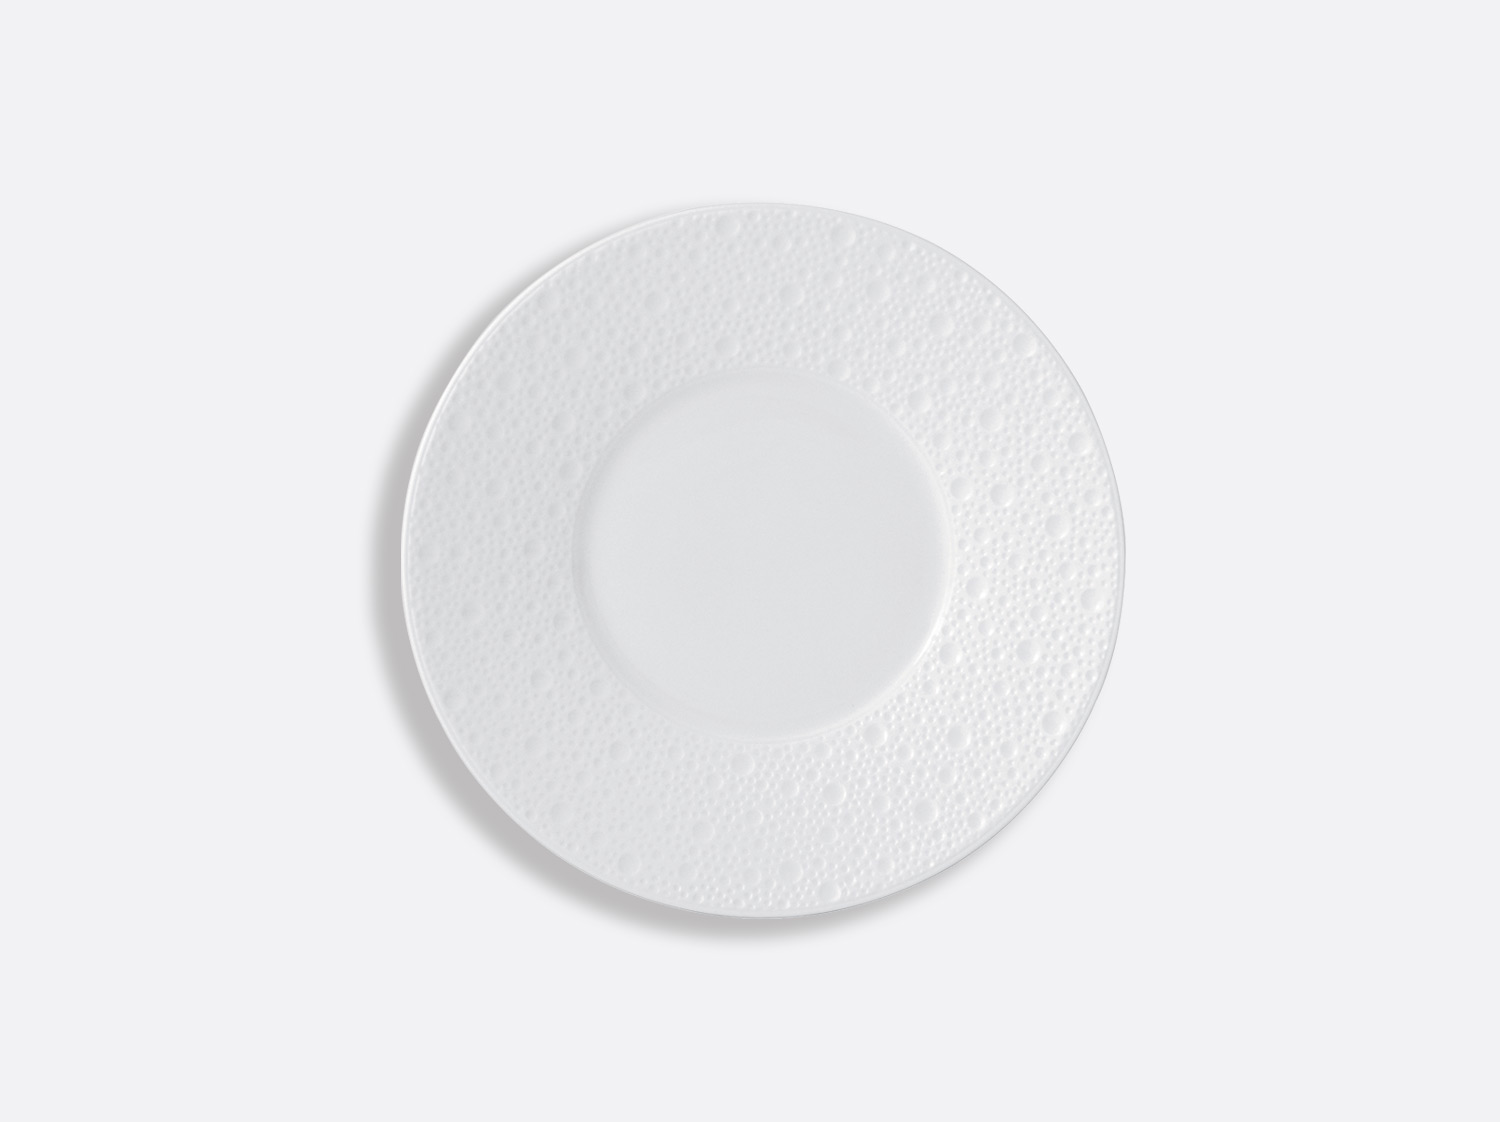 China Plate 16 cm of the collection Ecume | Bernardaud